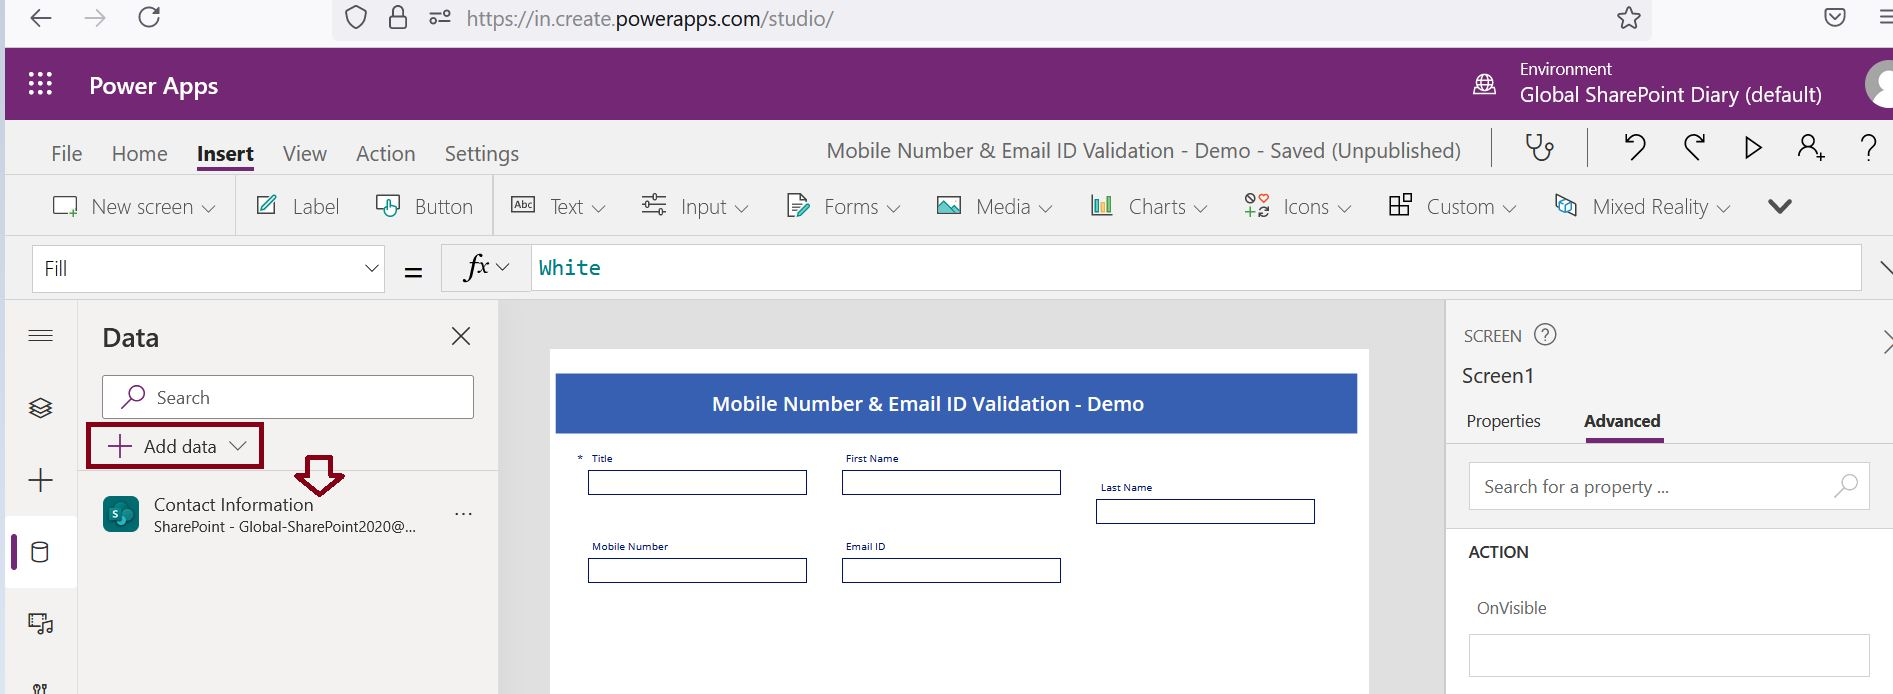 How to add data source to PowerApps Form?